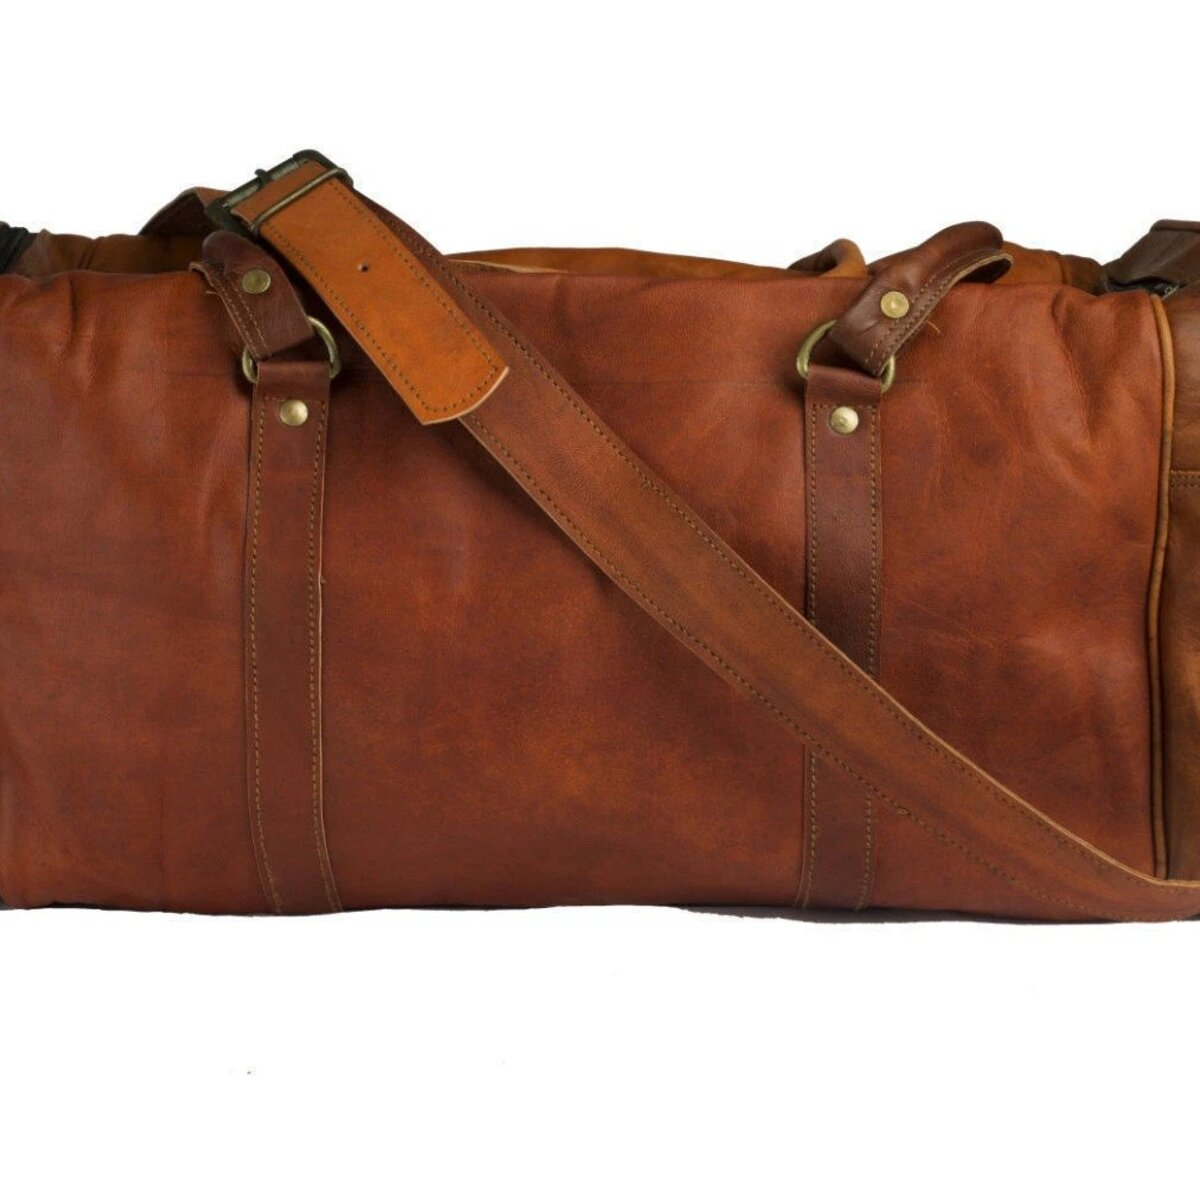 Large Leather Overnight Weekender Bag with Adjustable Strap